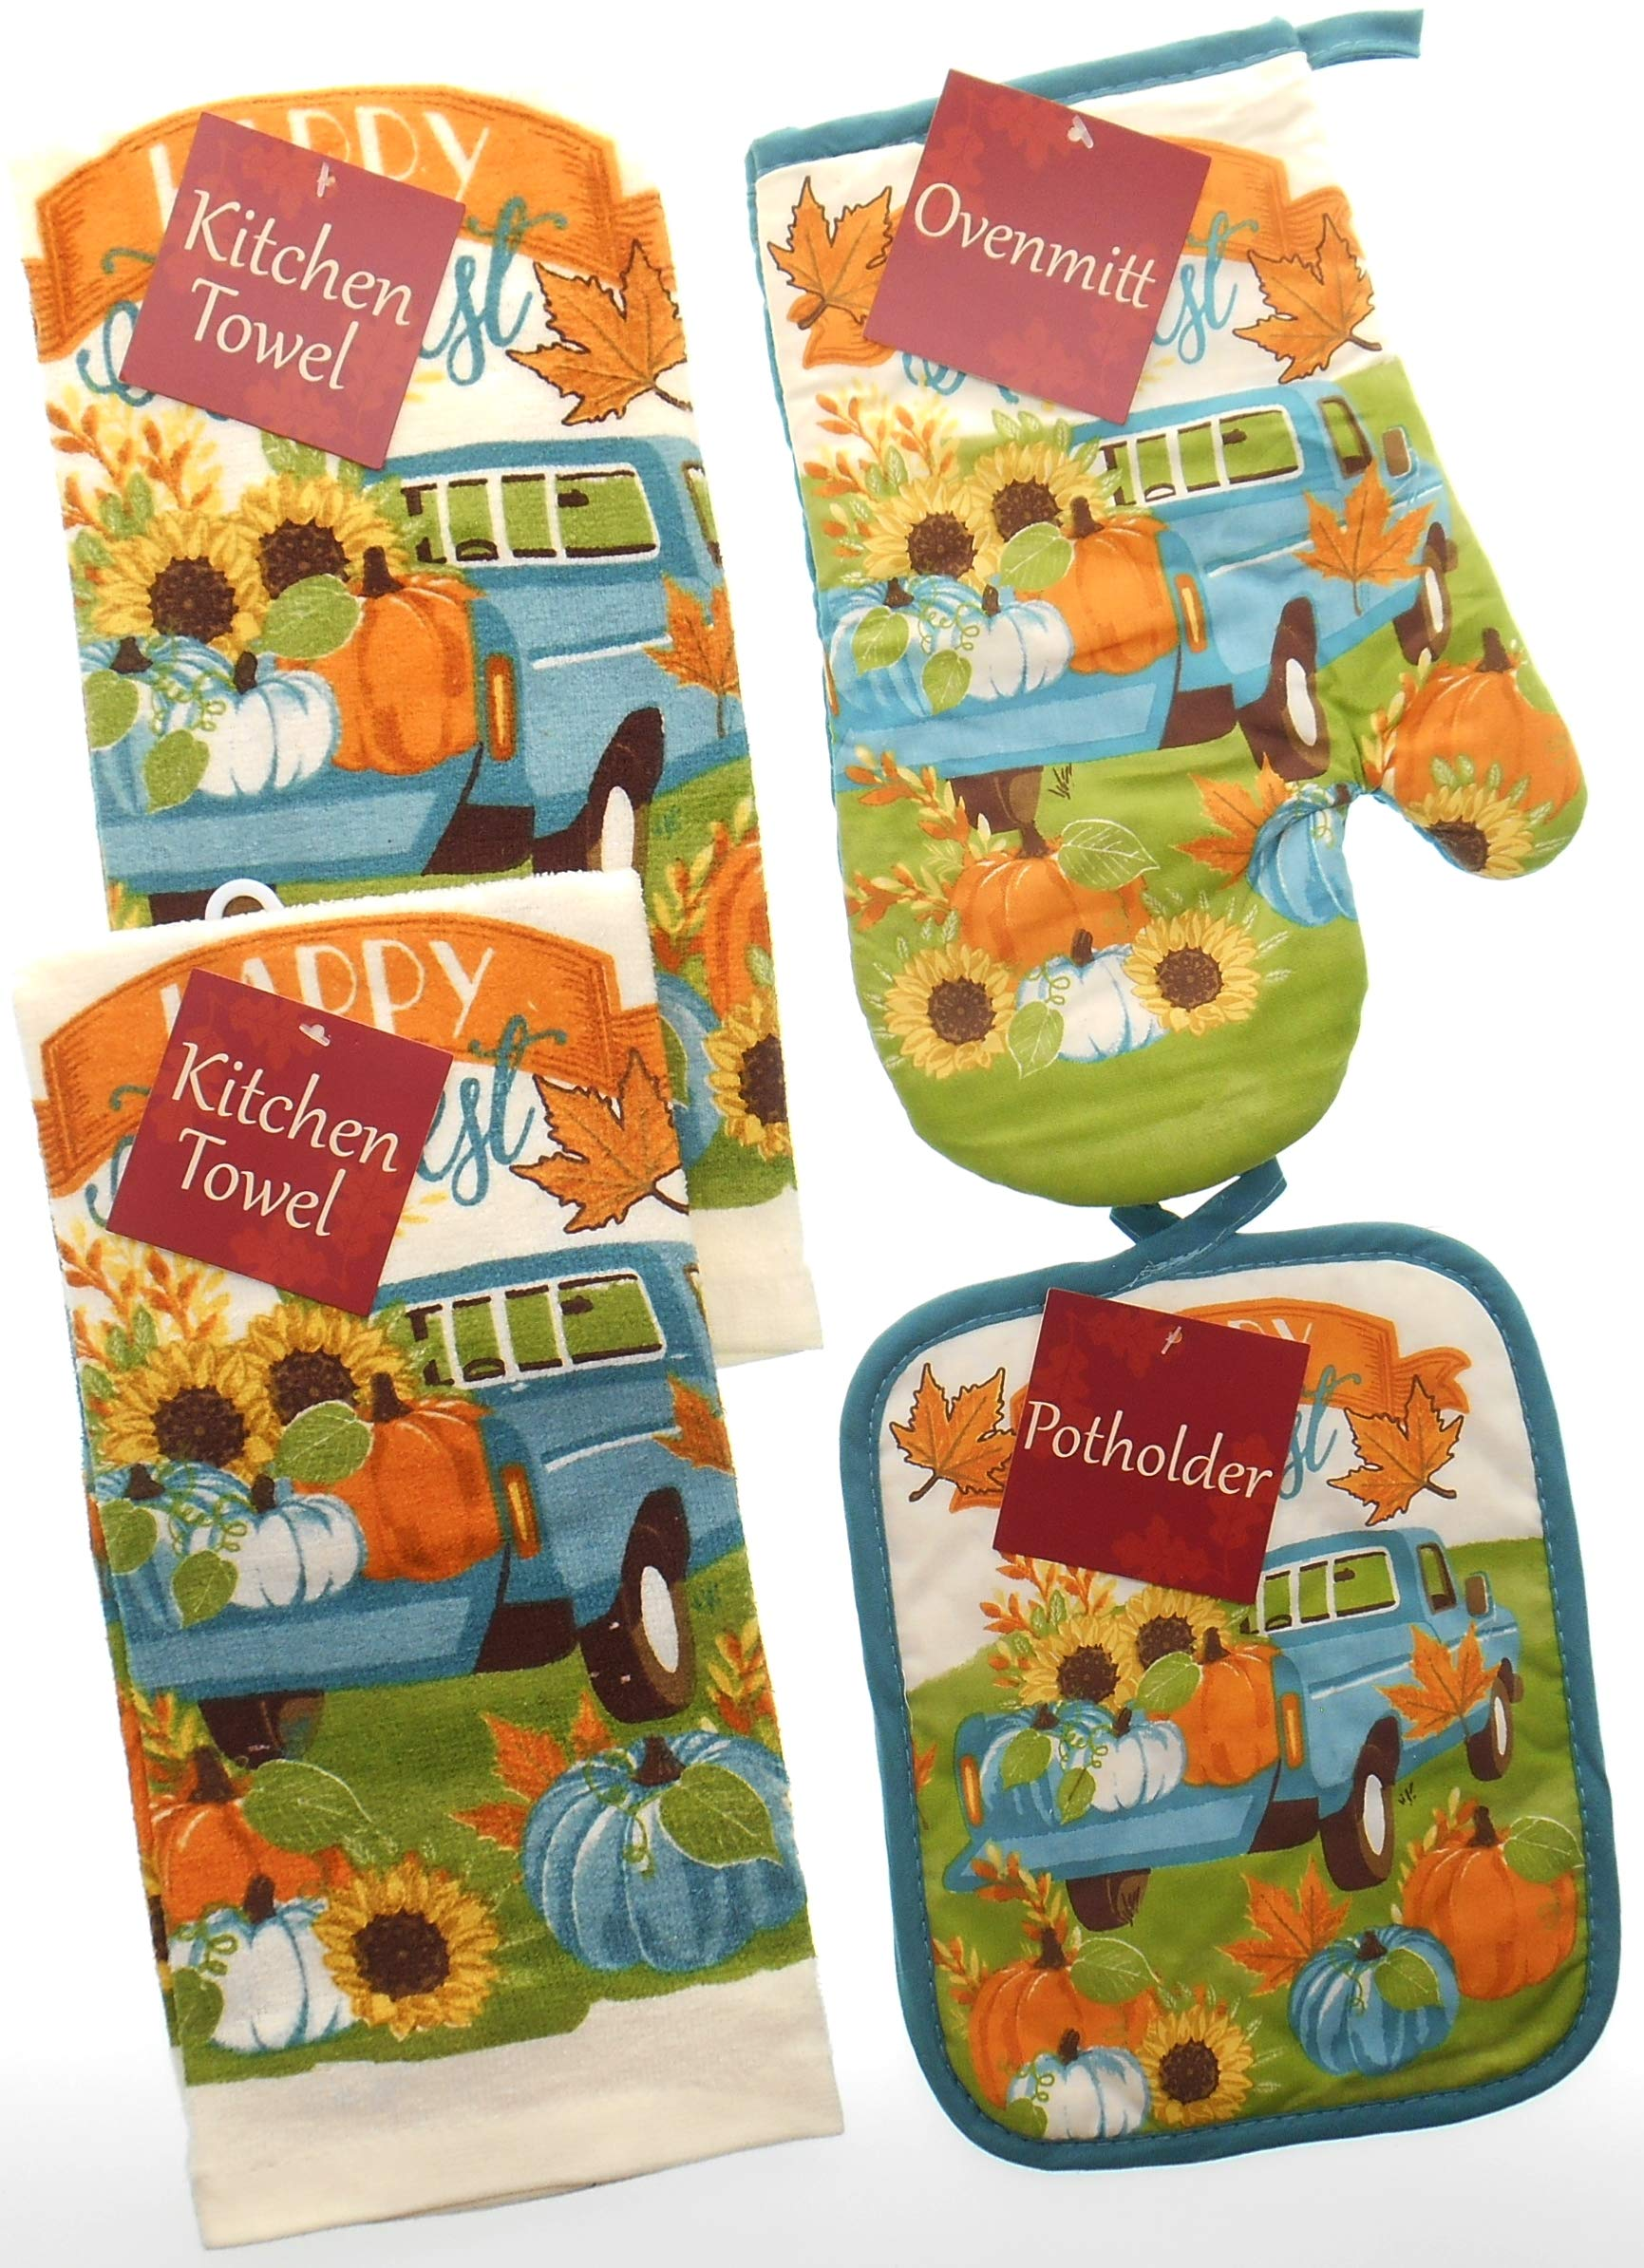 Harvest Happy Picking Kitchen Towel Set. Featuring Pick up Truck. Bundle of 4 Includes 2 Towels, 1 Oven Mitt and 1 Pot Holder. Fall Kitchen Towels Set.